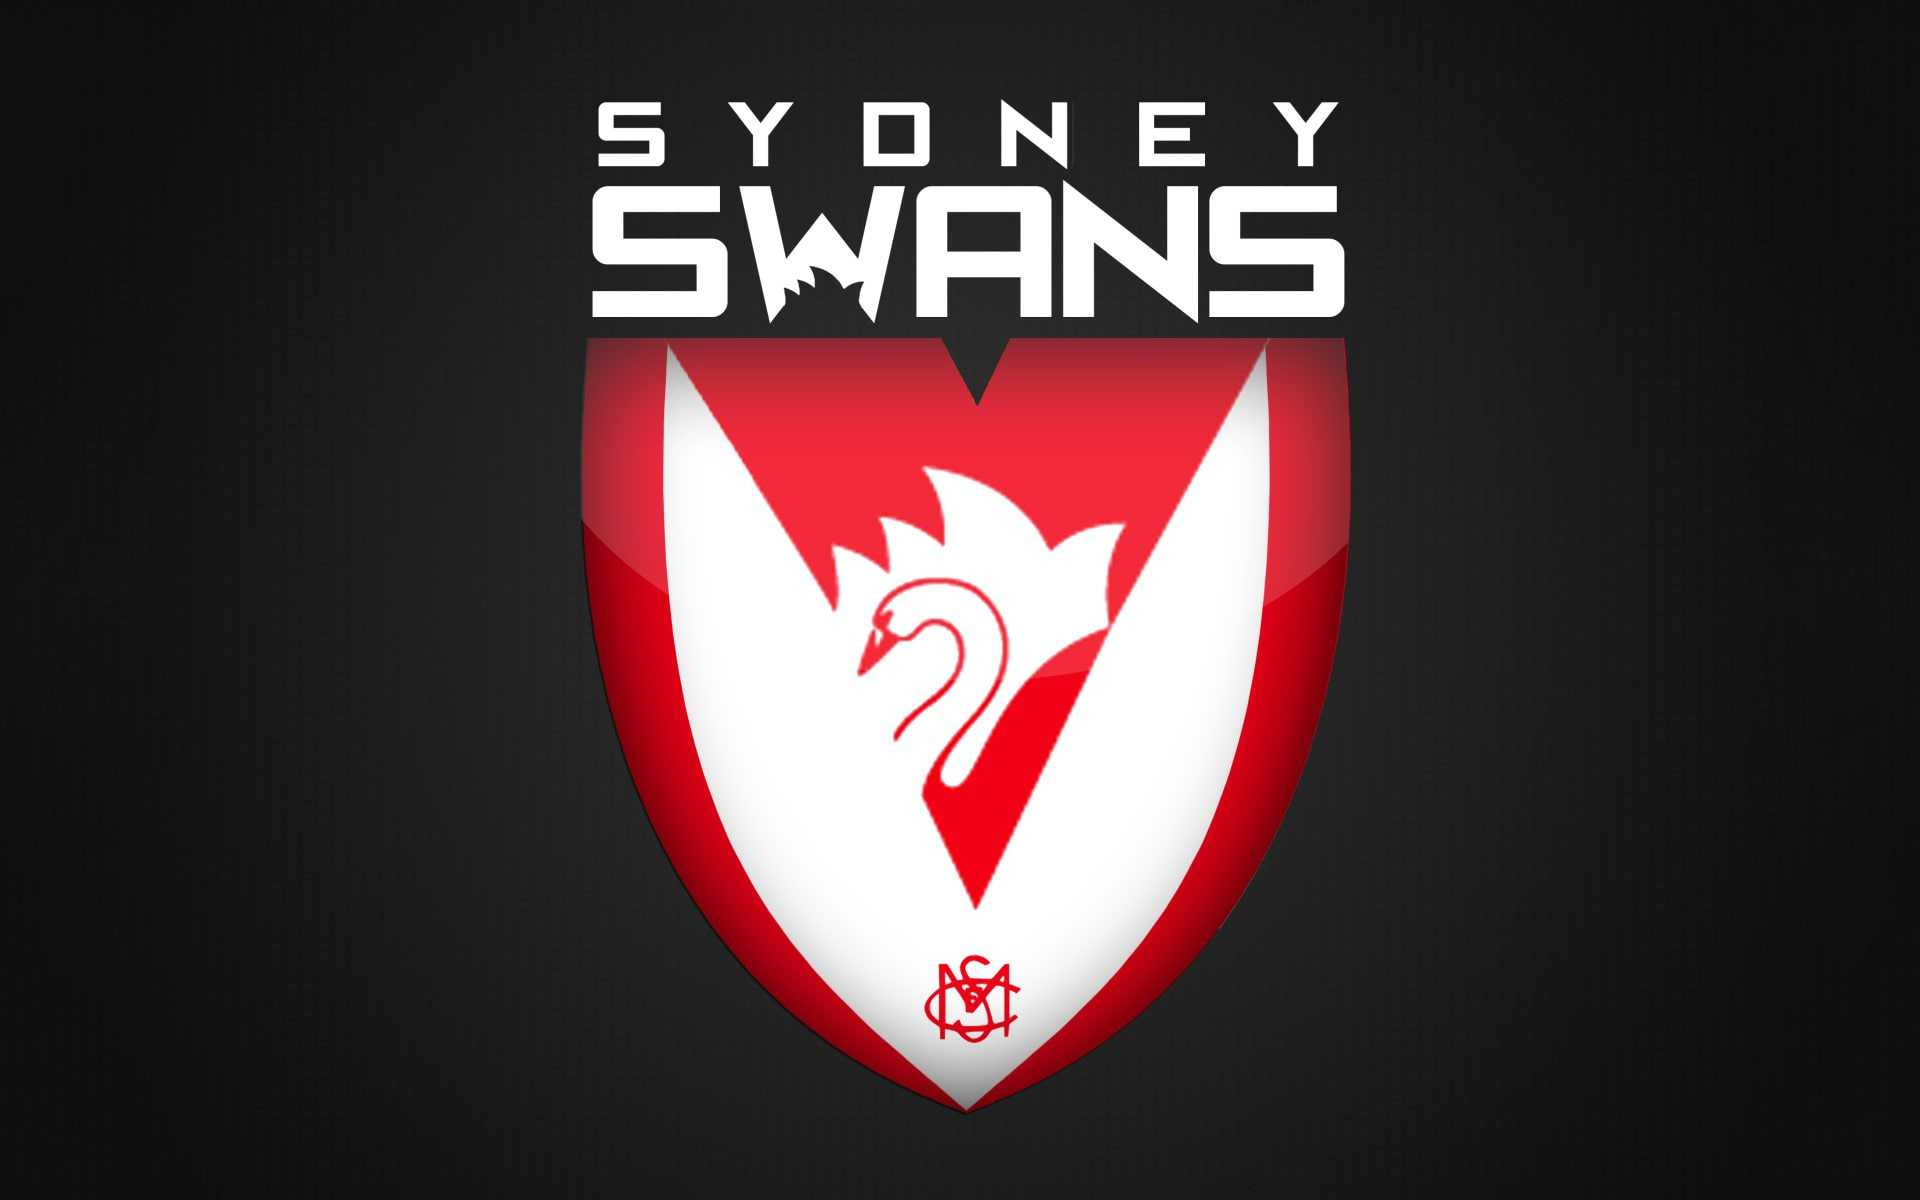 Sydney Swans Wallpaper 1